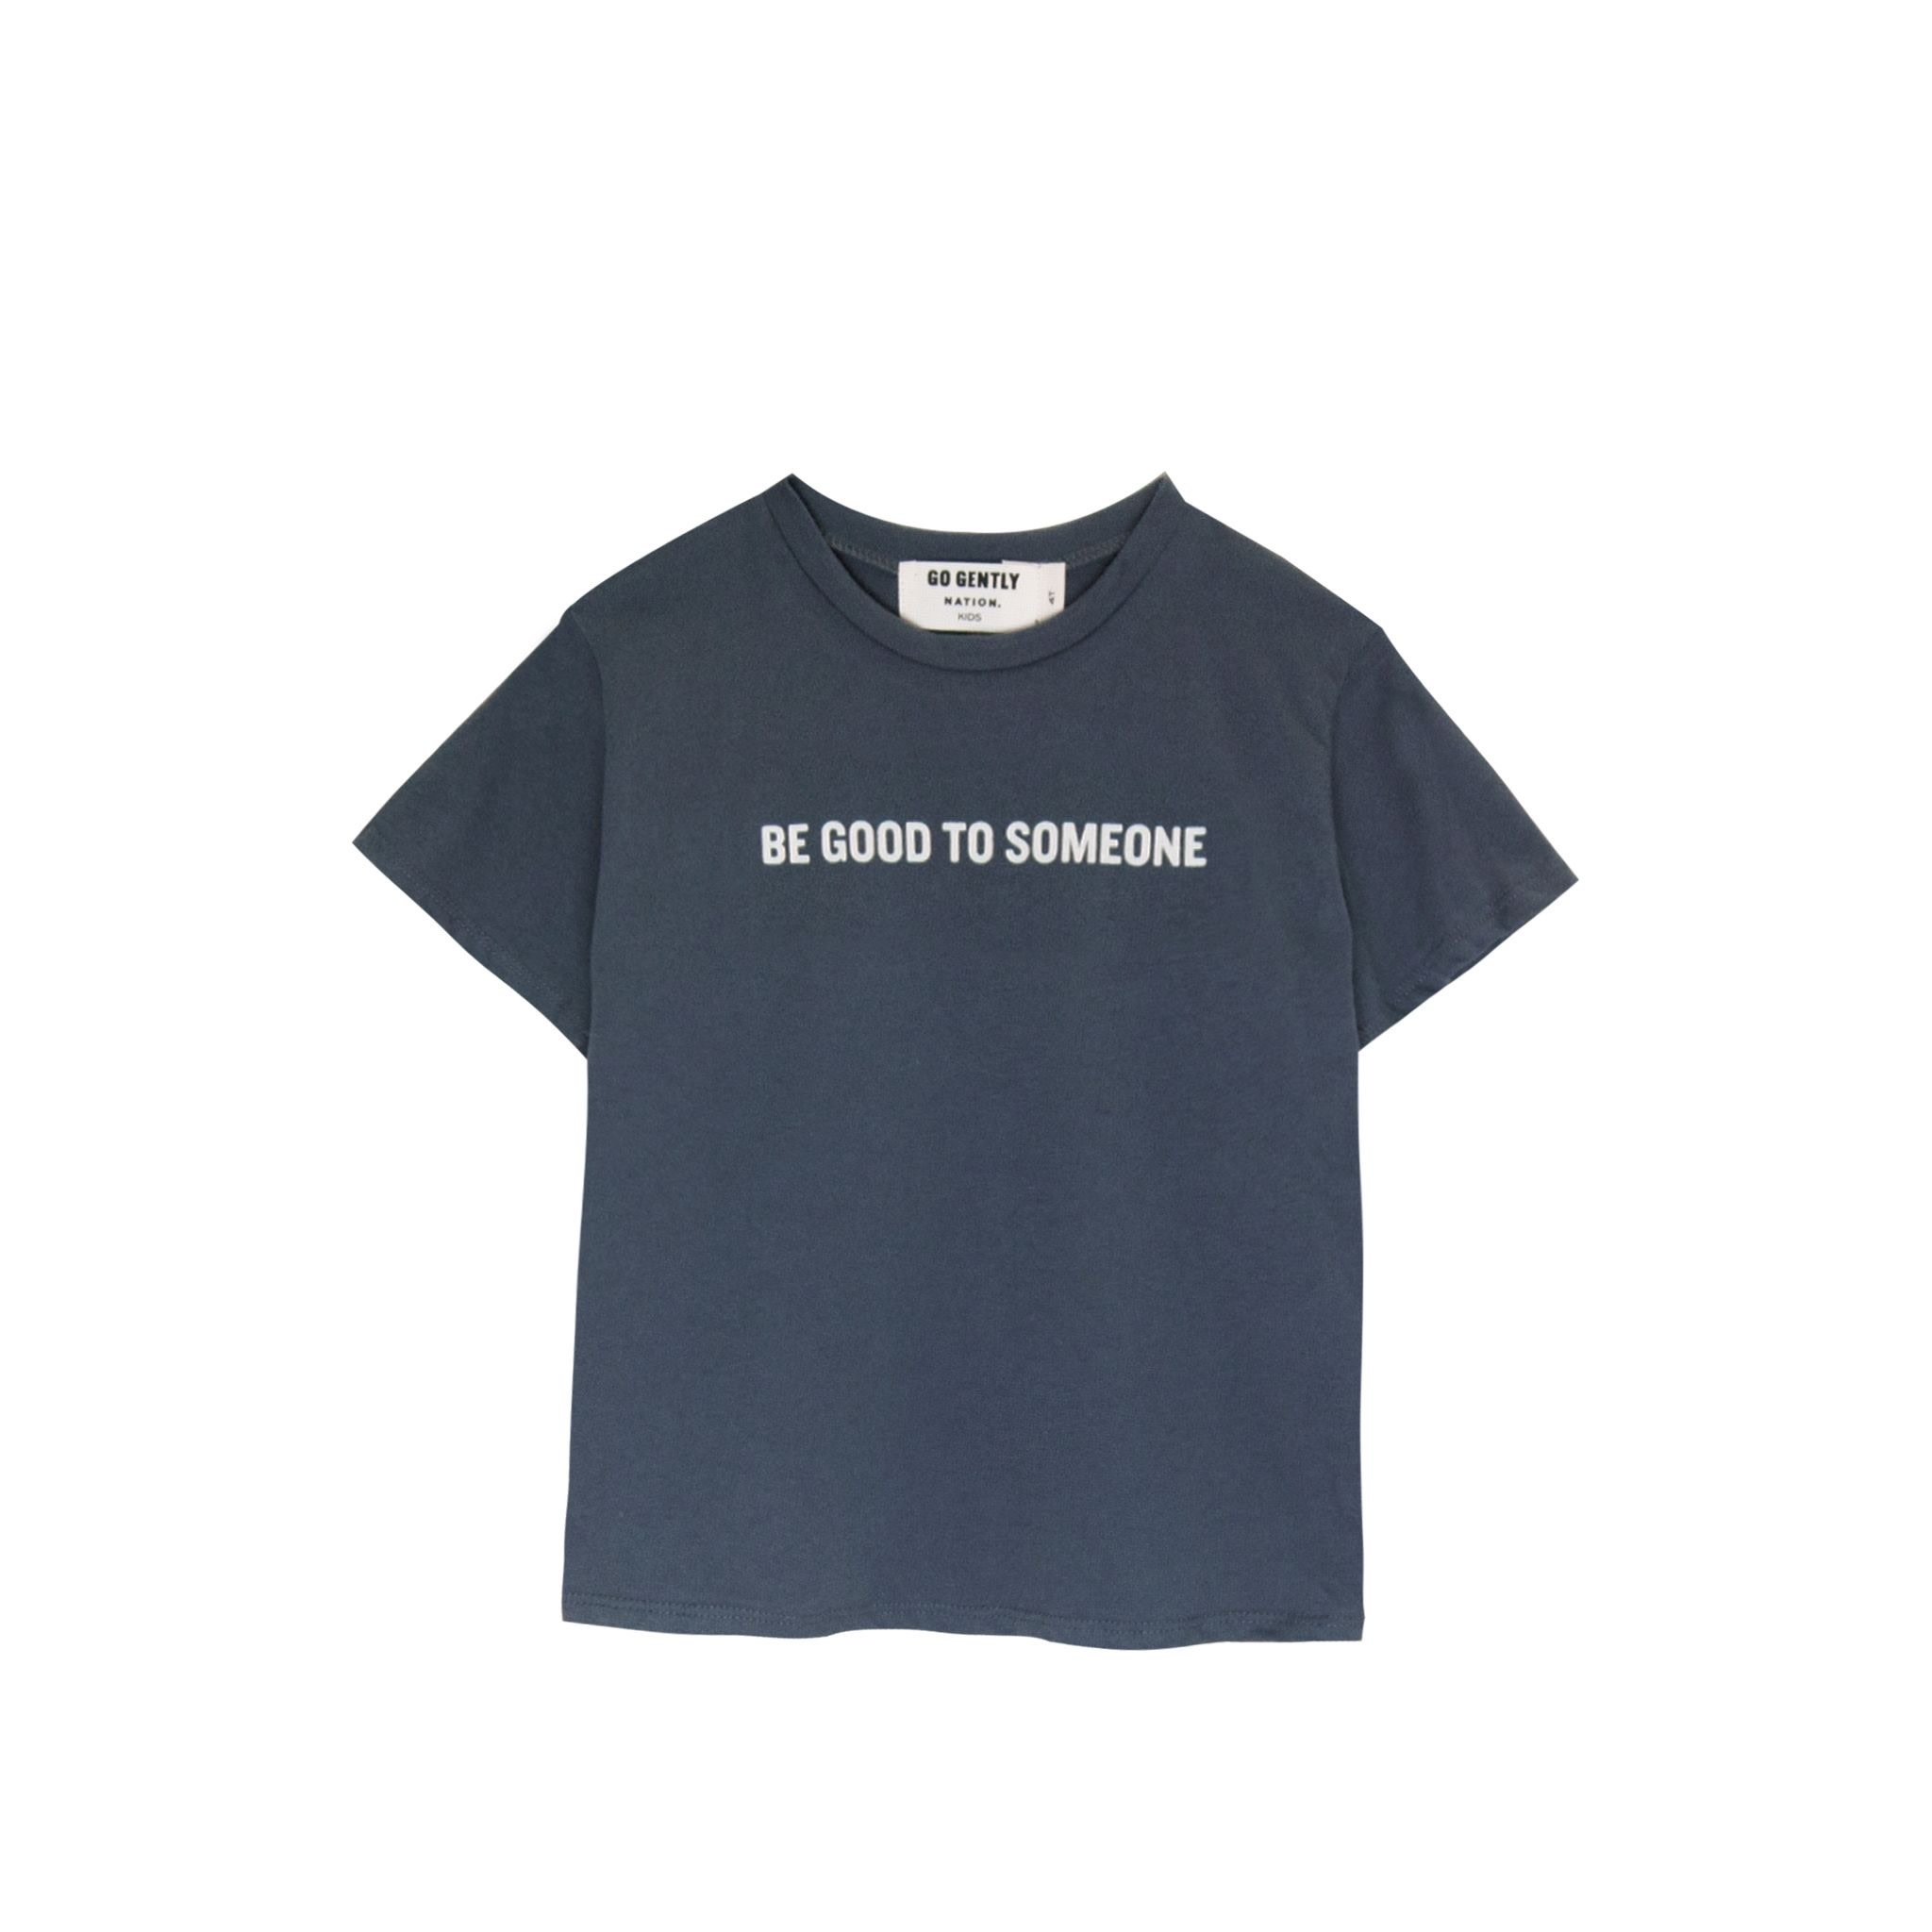 GOGENTLYNATION Be Good To Someone Baby Tee